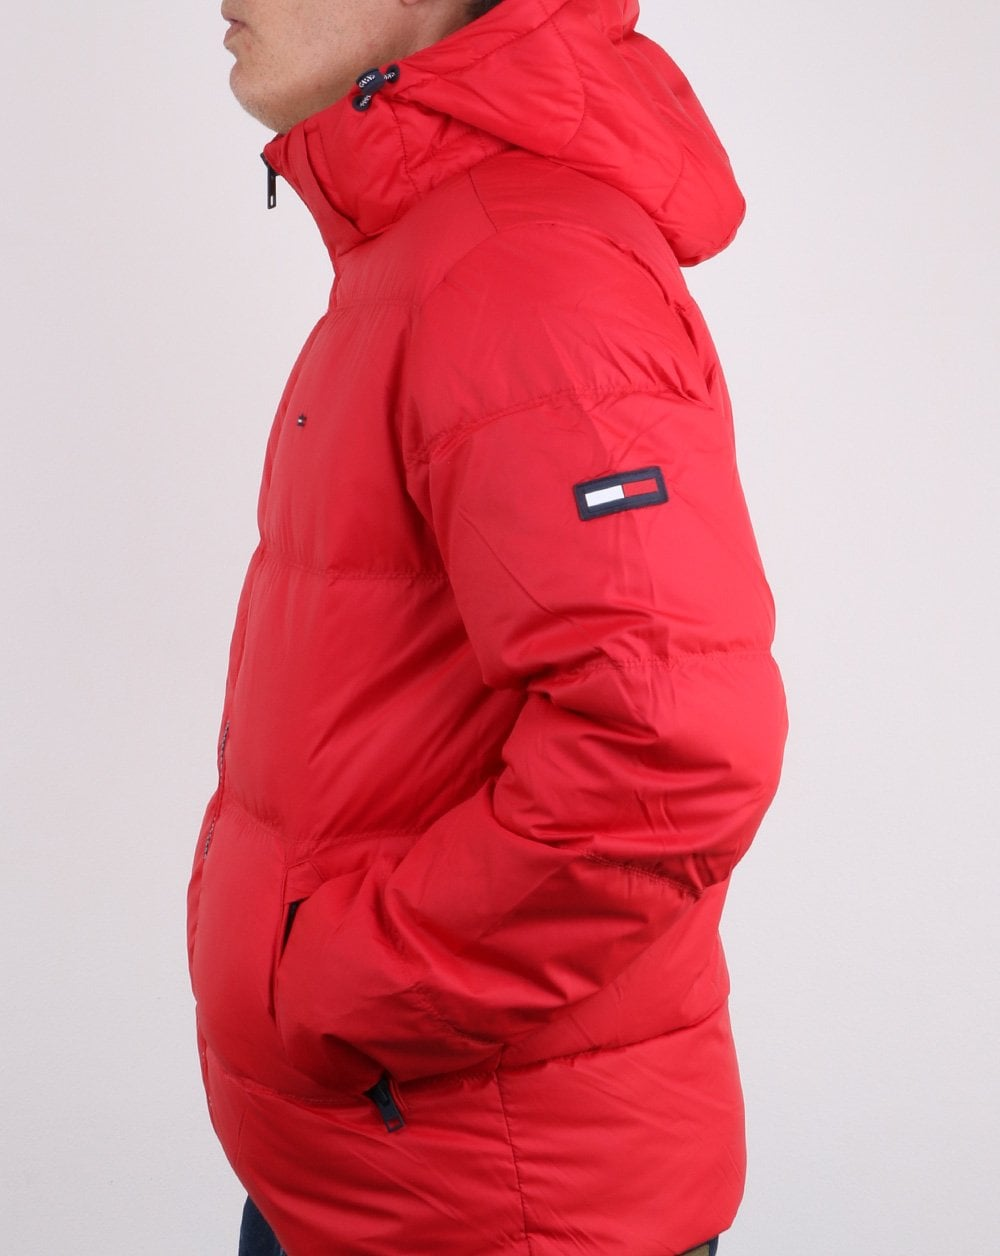 Tommy Hilfiger Down Jacket Red Mens Coat Padded Warm